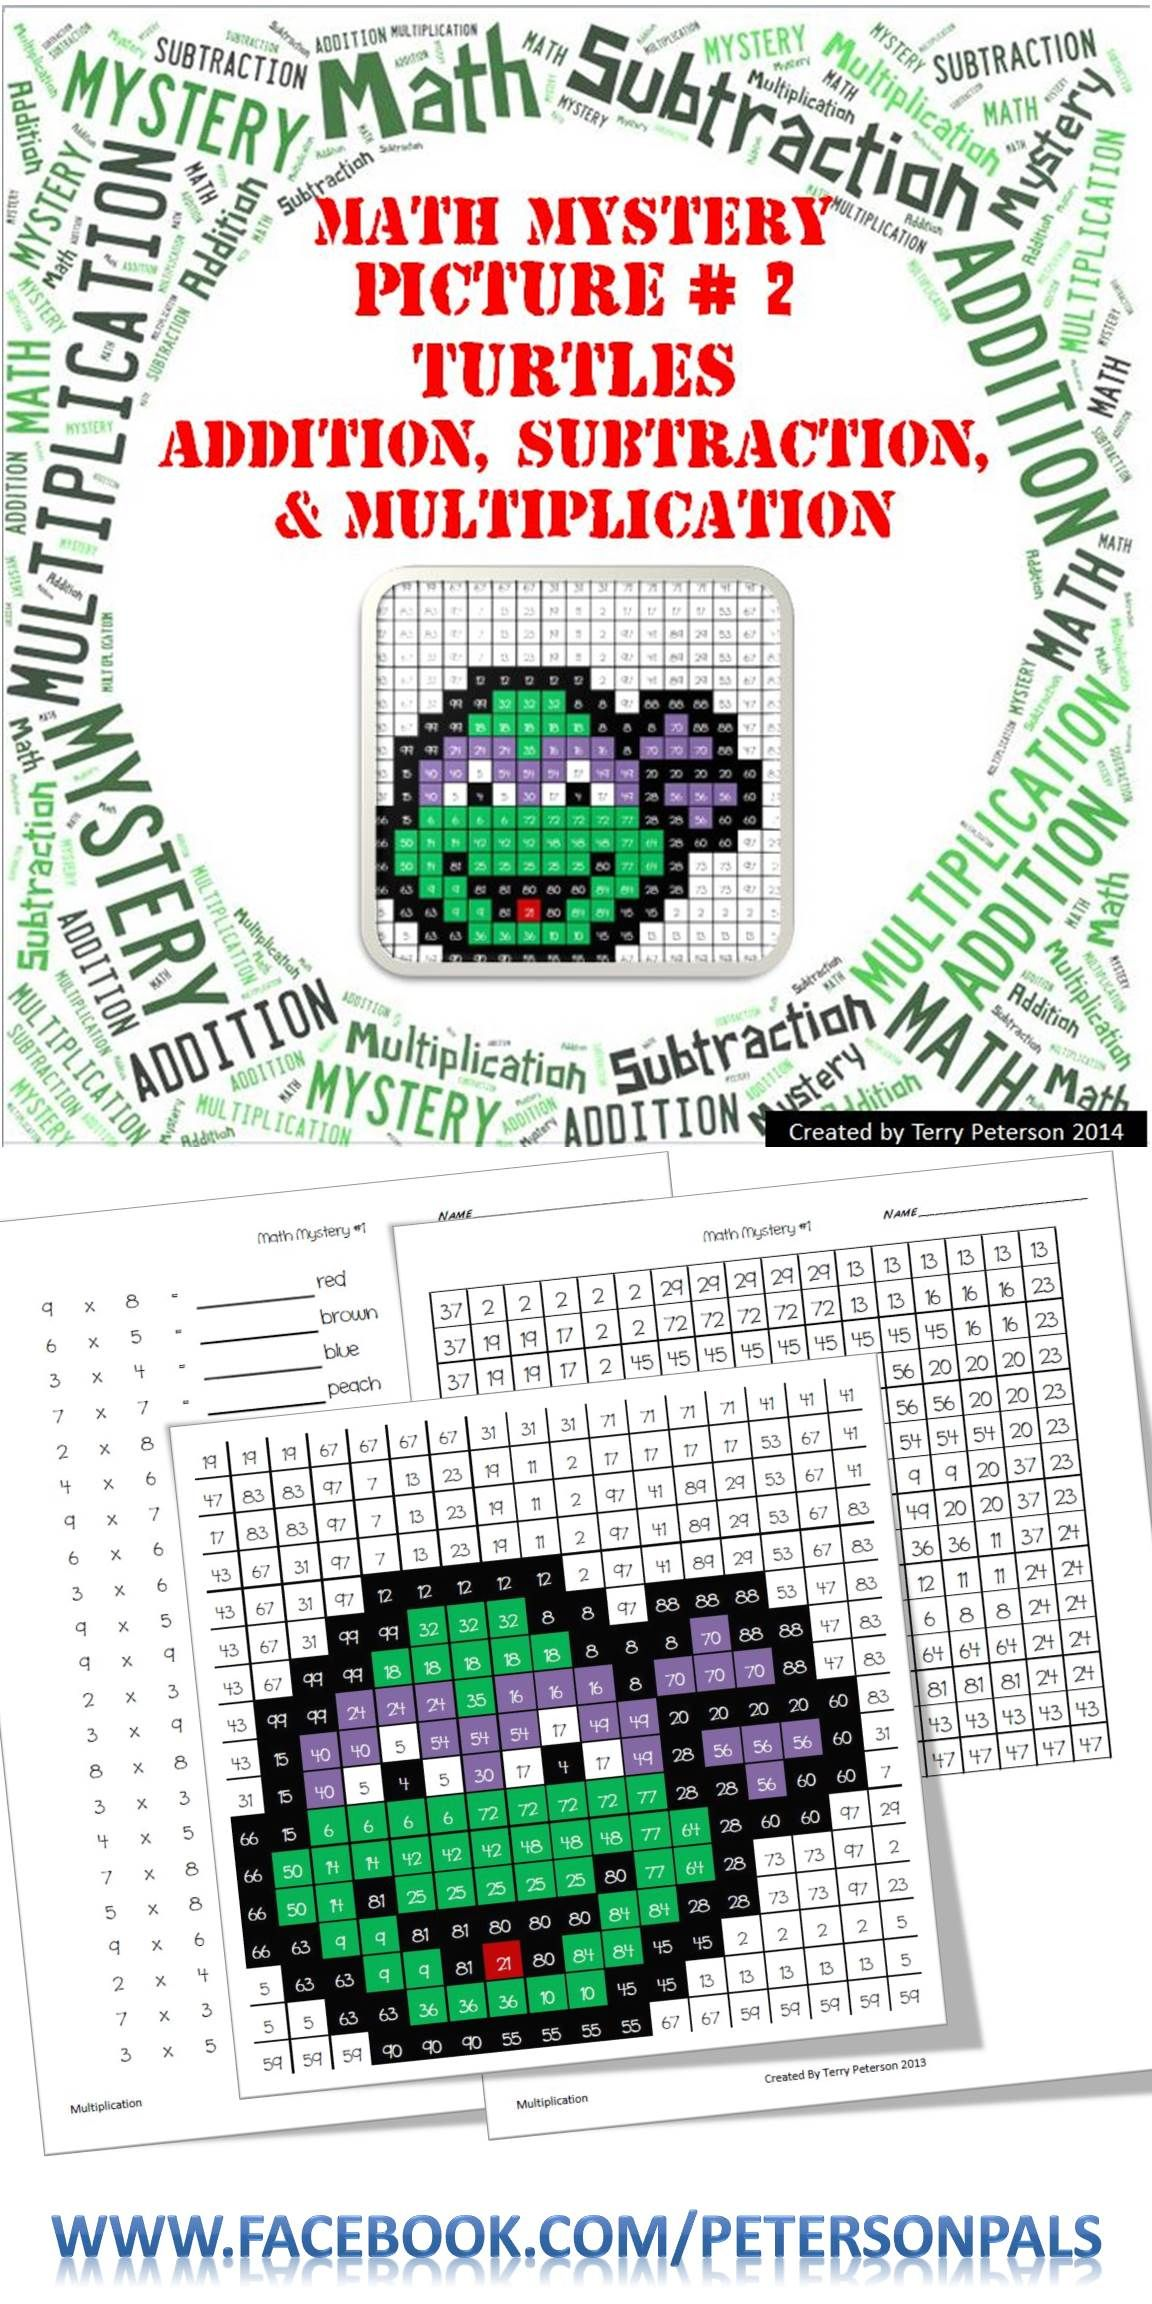 Ninja Turtles Math Mystery Picture 2 Addition